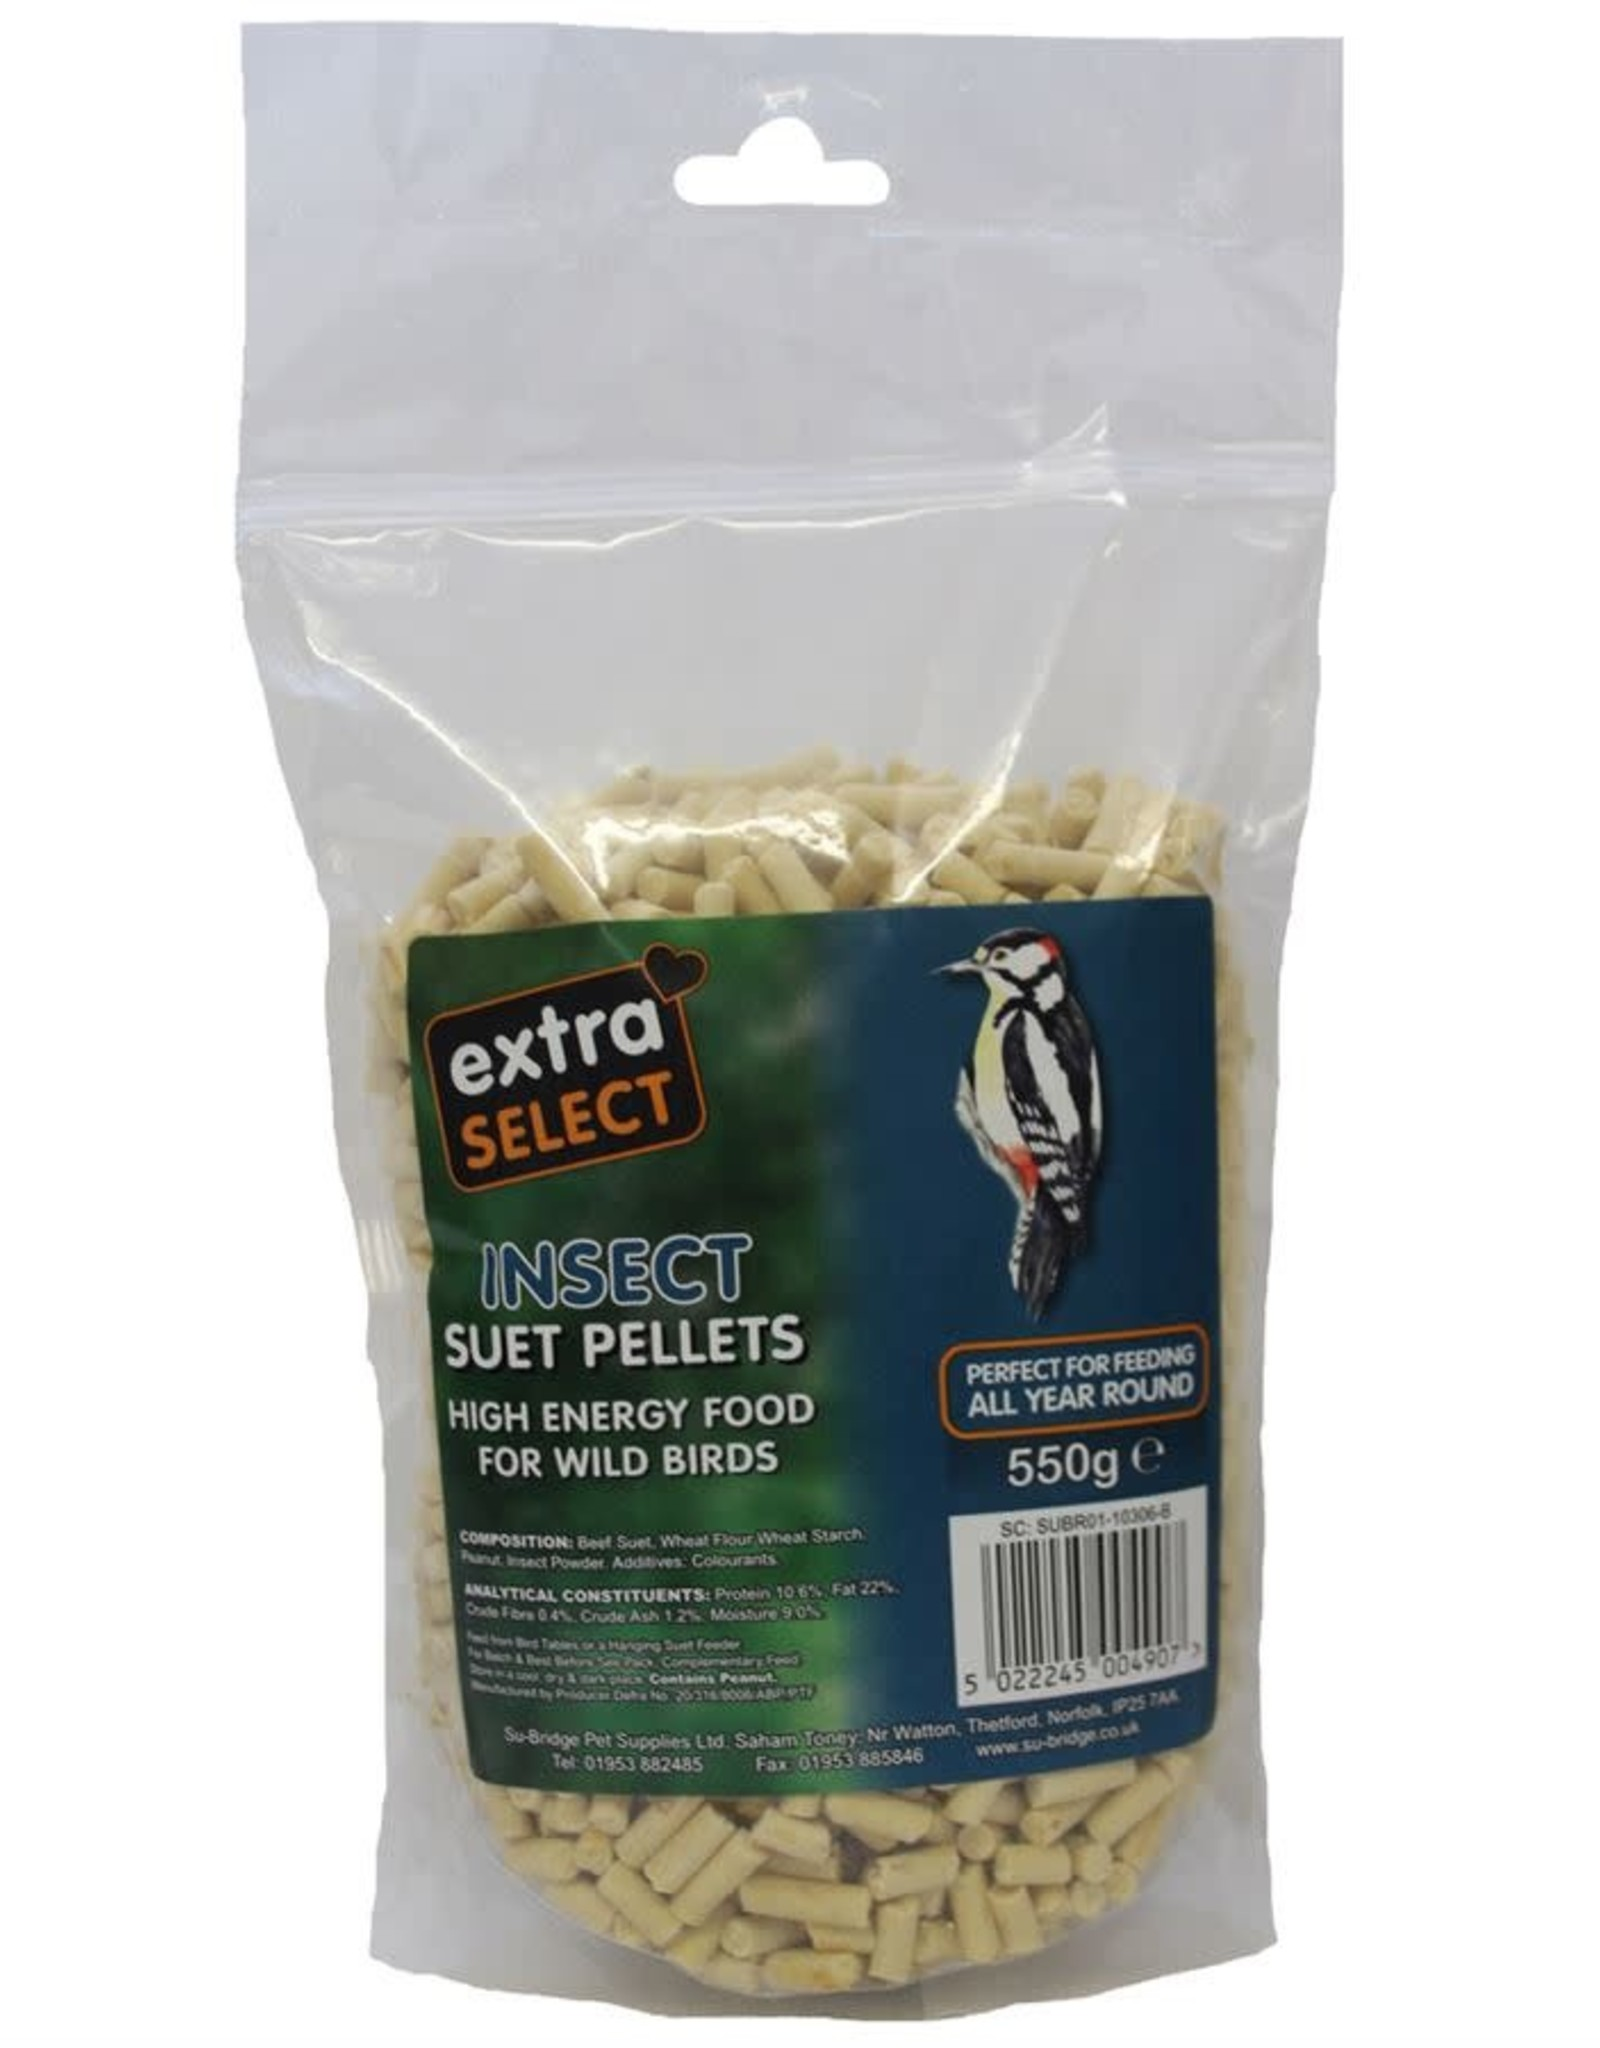 Extra Select High Energy Wild Bird Suet Pellets with Seed and Insect 3kg